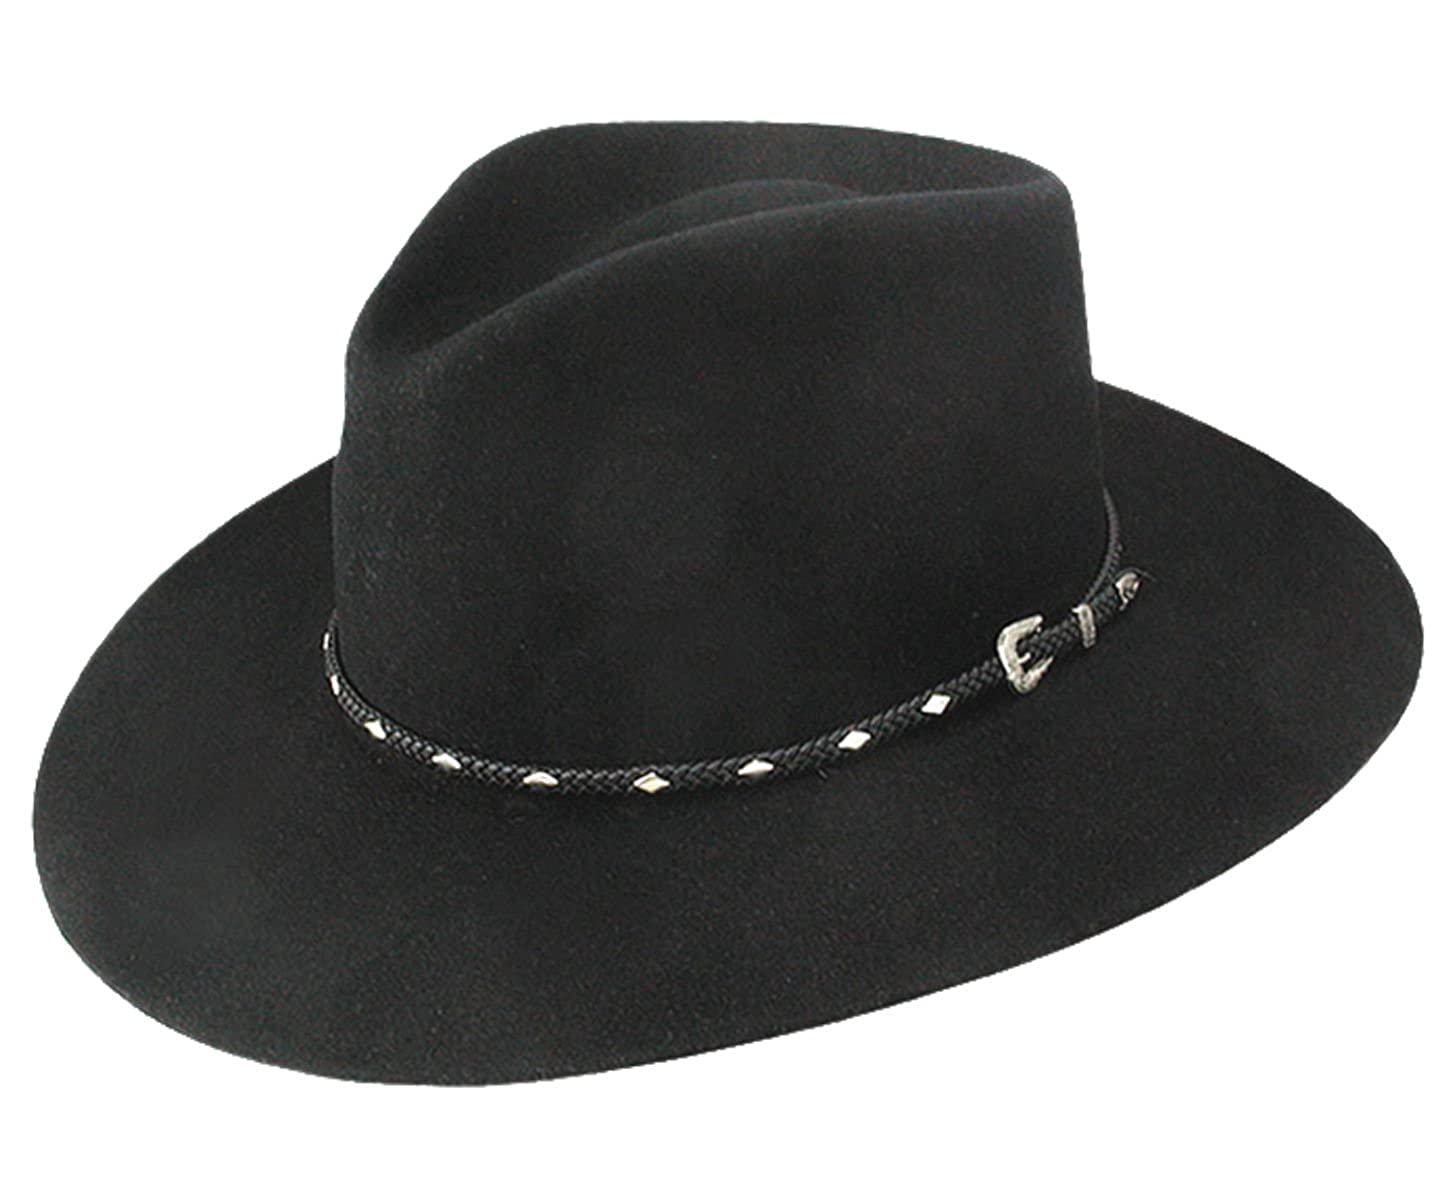 0f11d16c Stetson Men's 4X Diamond Jim Fur Felt Cowboy Hat at Amazon Men's Clothing  store: